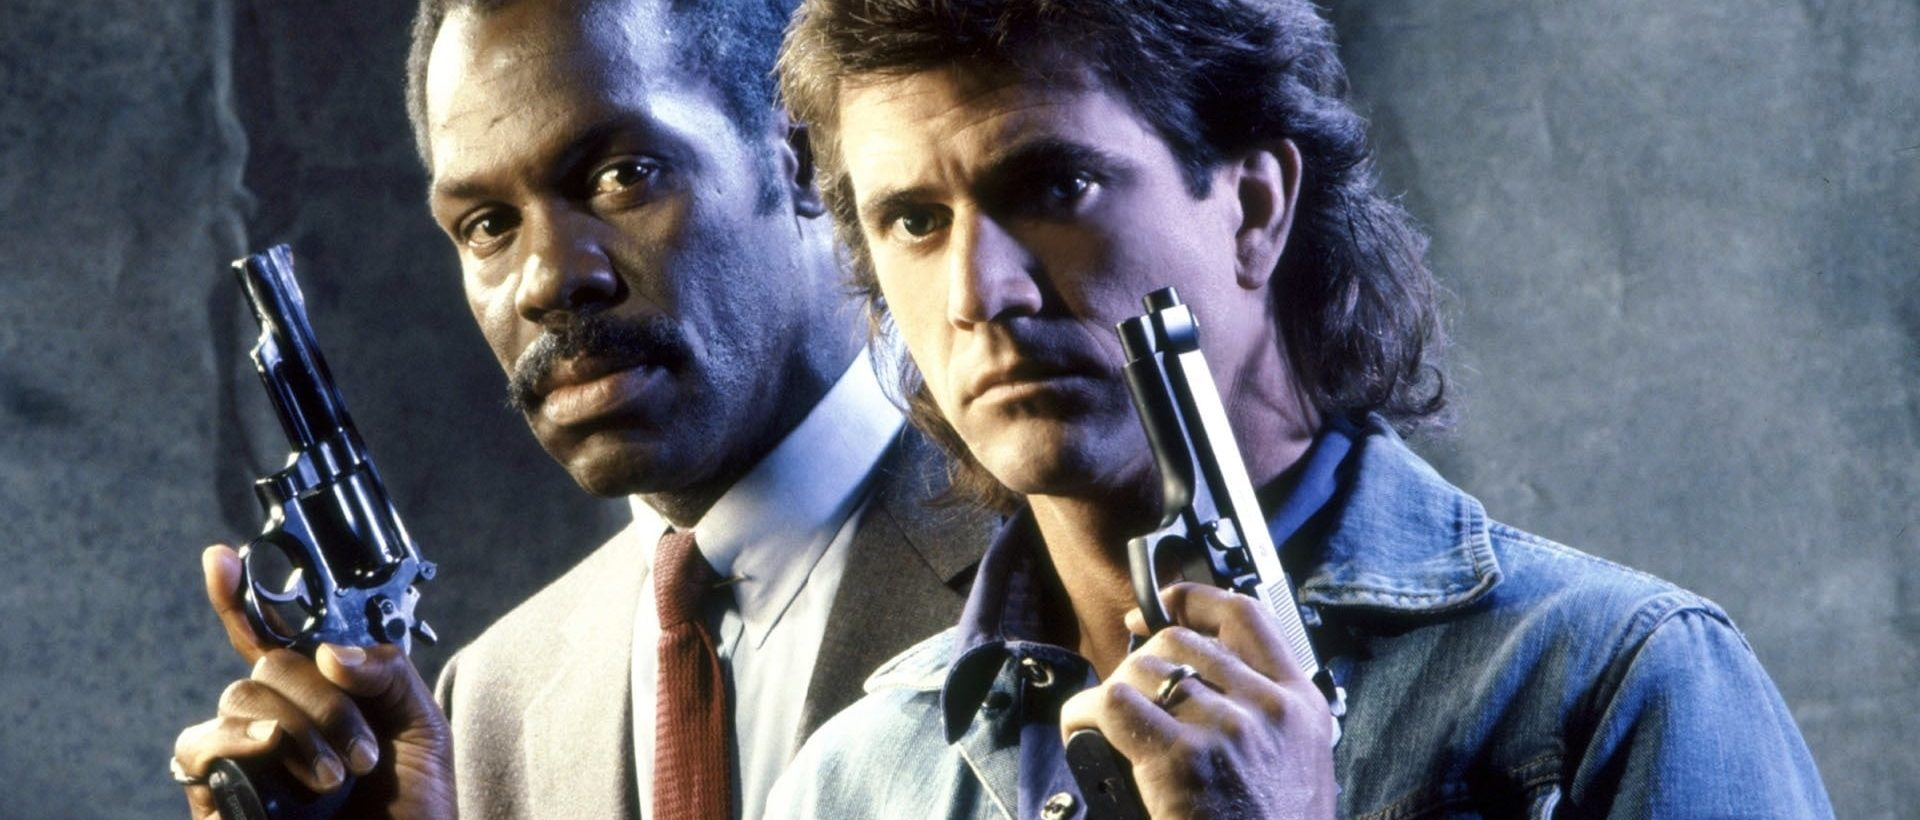 https://celebritycontent.com/2020/01/29/lethal-weapon-5-confirmed-with-mel-gibson-and-danny-glover-returning/